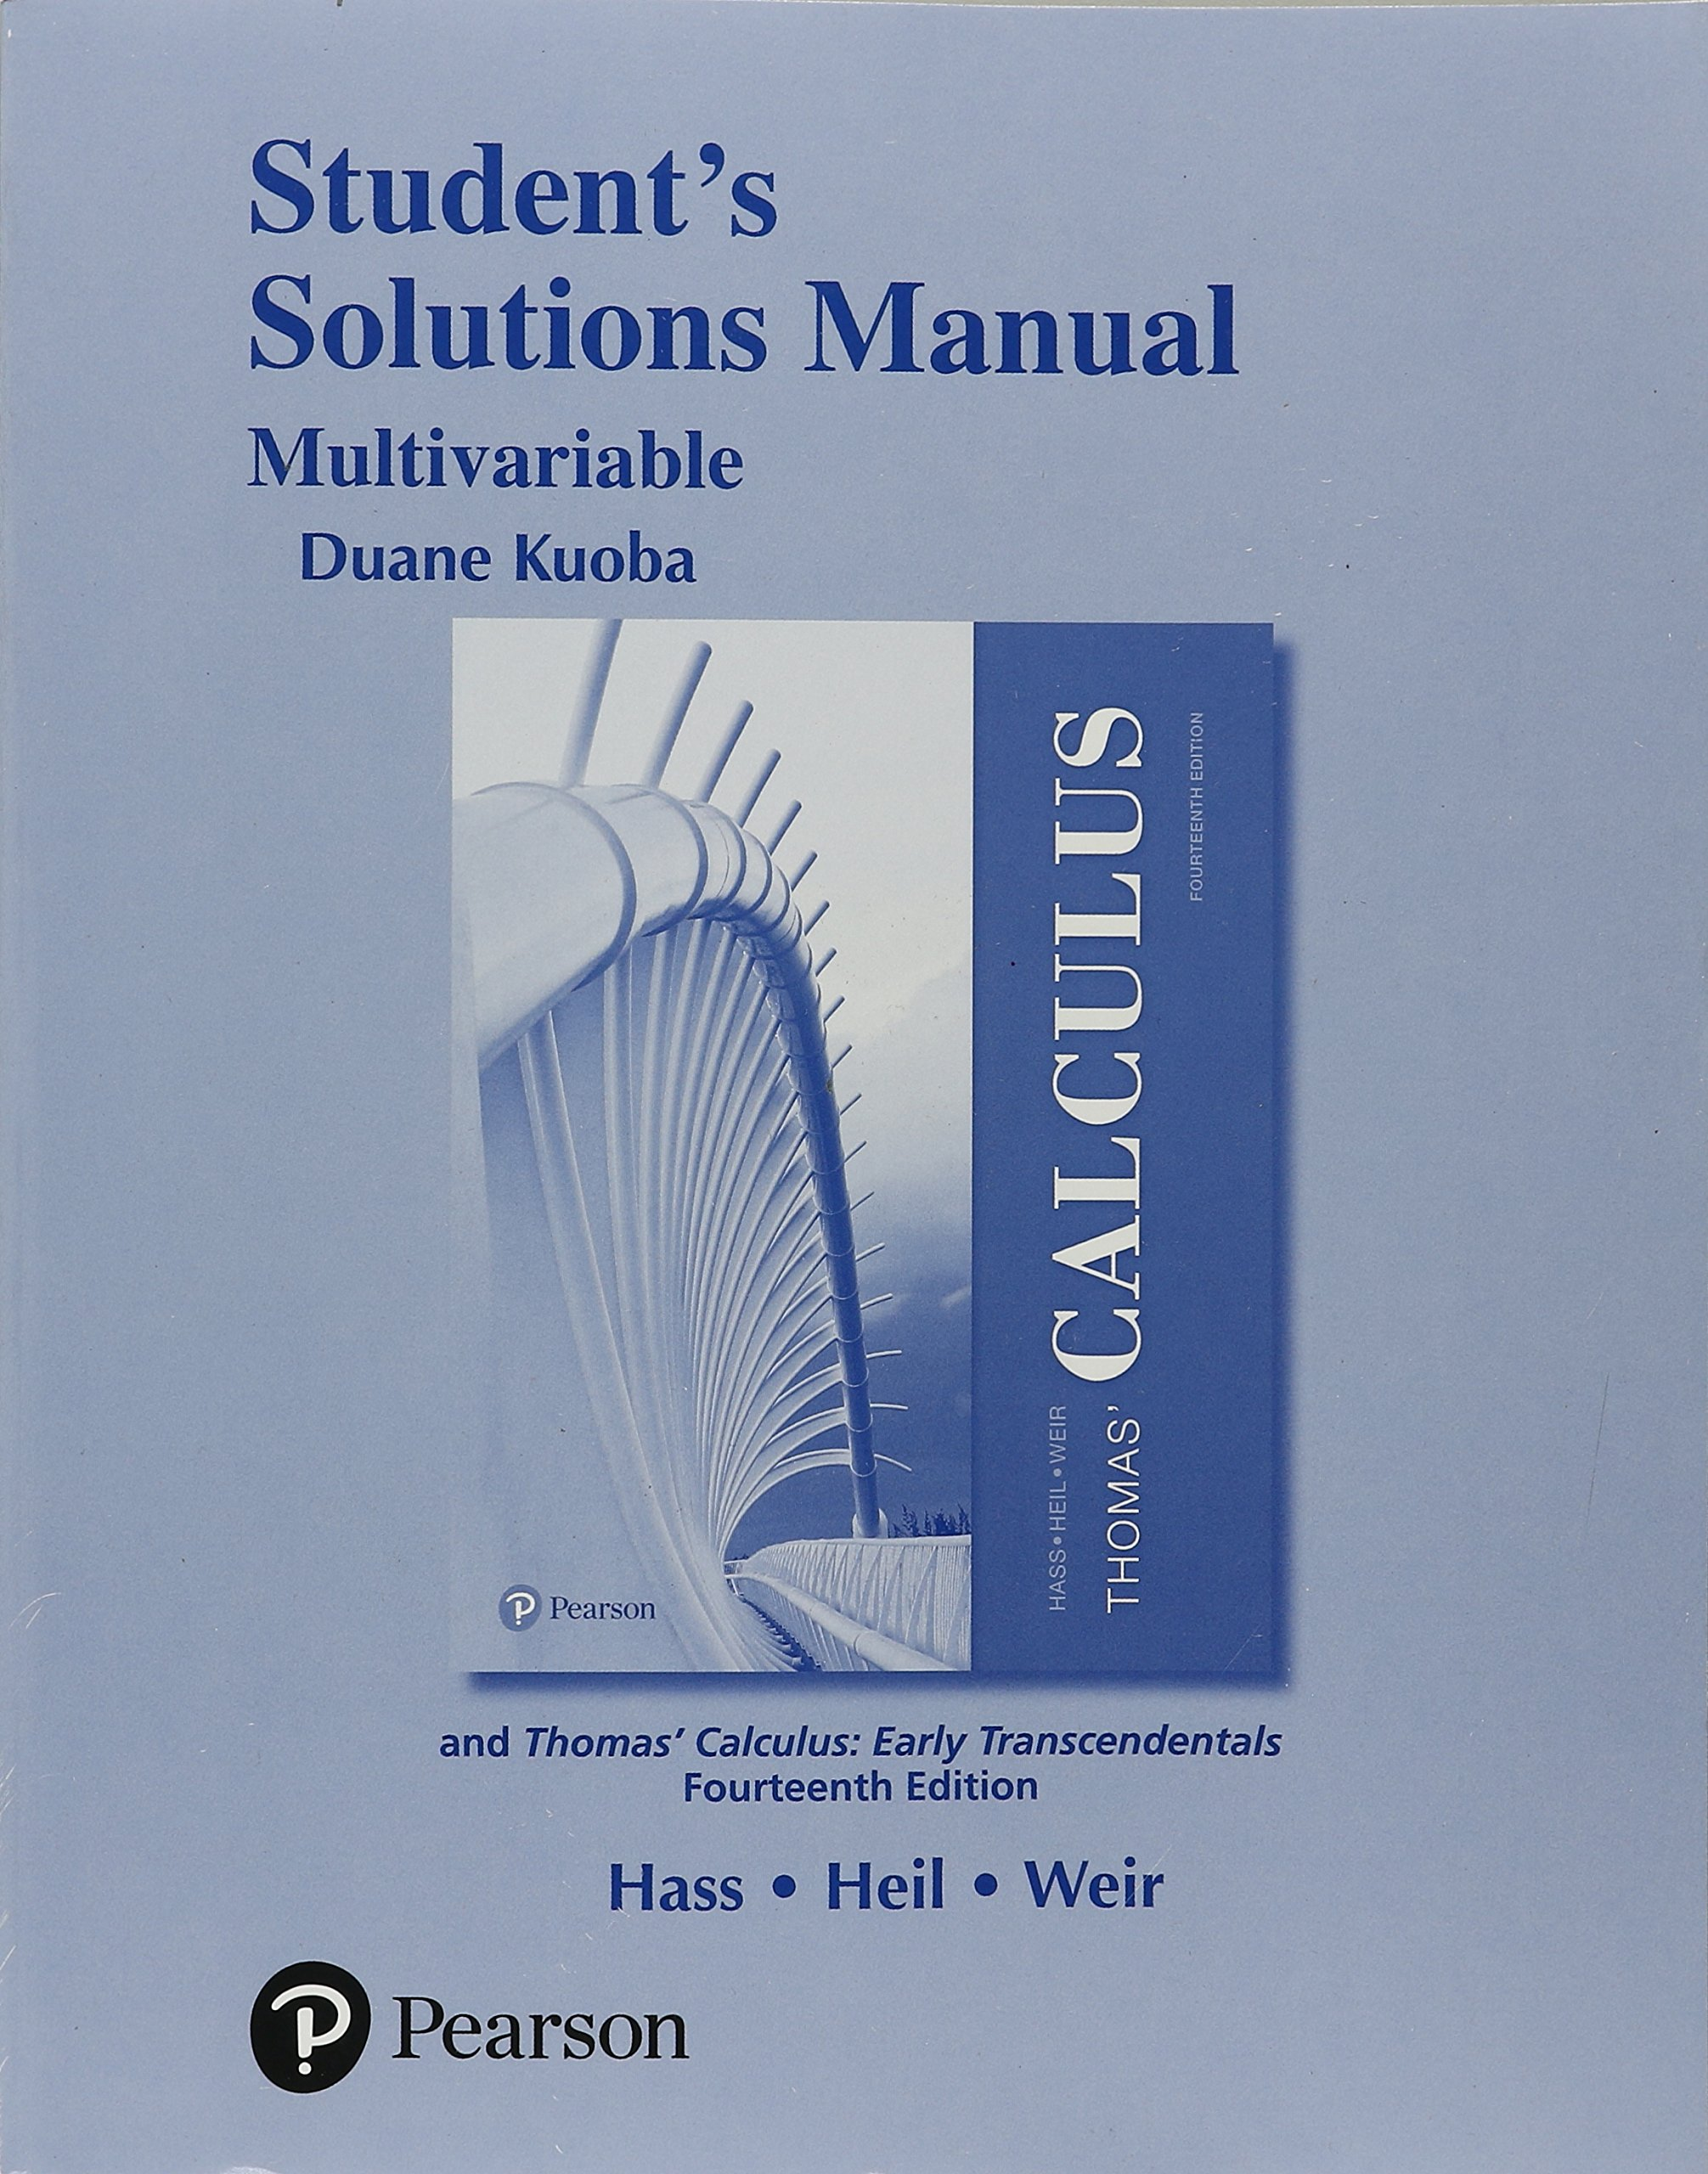 Student Solutions Manual for Thomas' Calculus, Multivariable: Joel R. Hass,  Christopher E. Heil, Maurice D. Weir: 9780134606057: Books - Amazon.ca